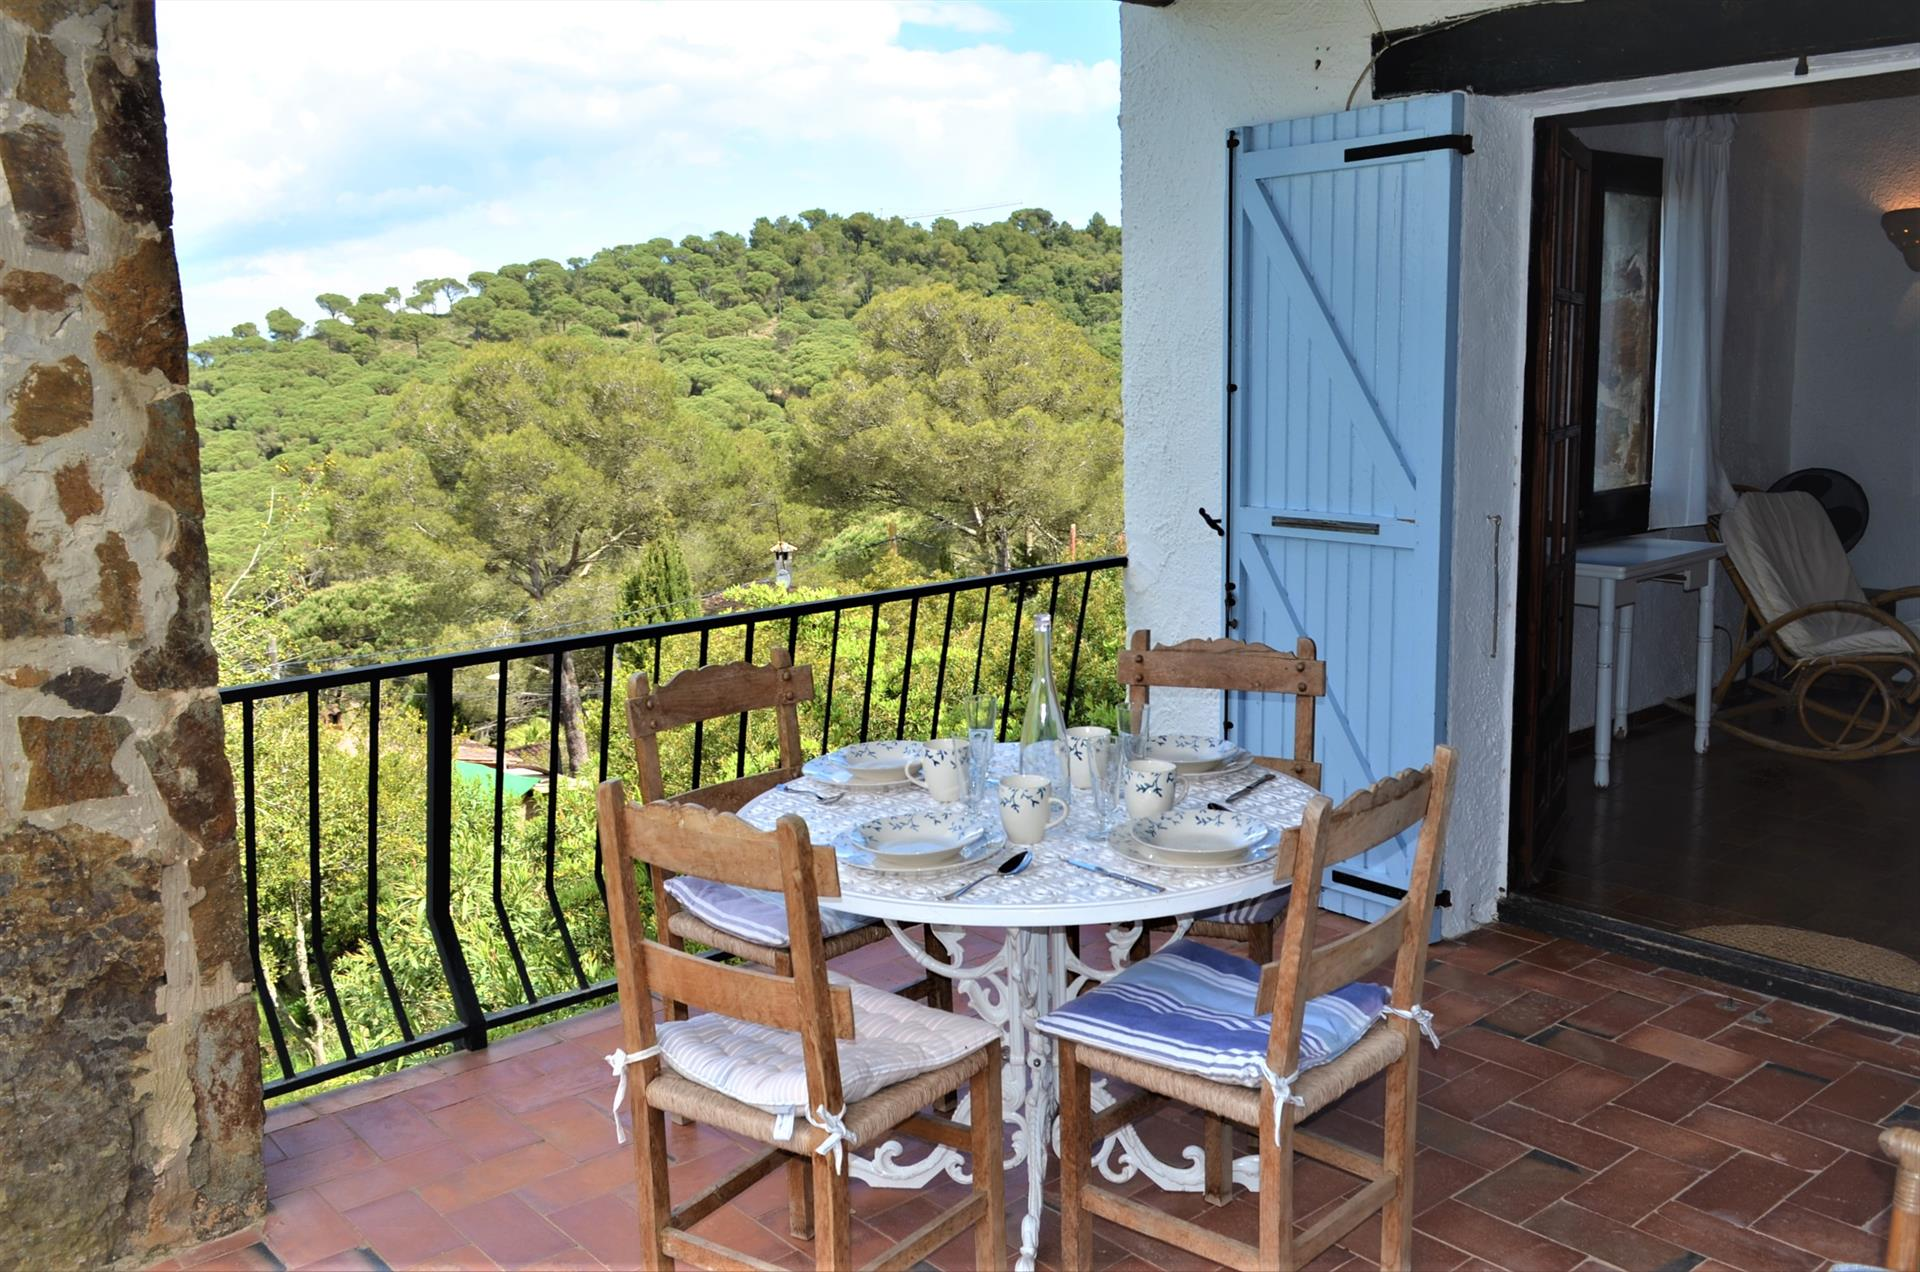 MINIPA casa tipo rùstica para 4 personas, Rustic and comfortable house in Begur, on the Costa Brava, Spain for 4 persons.....